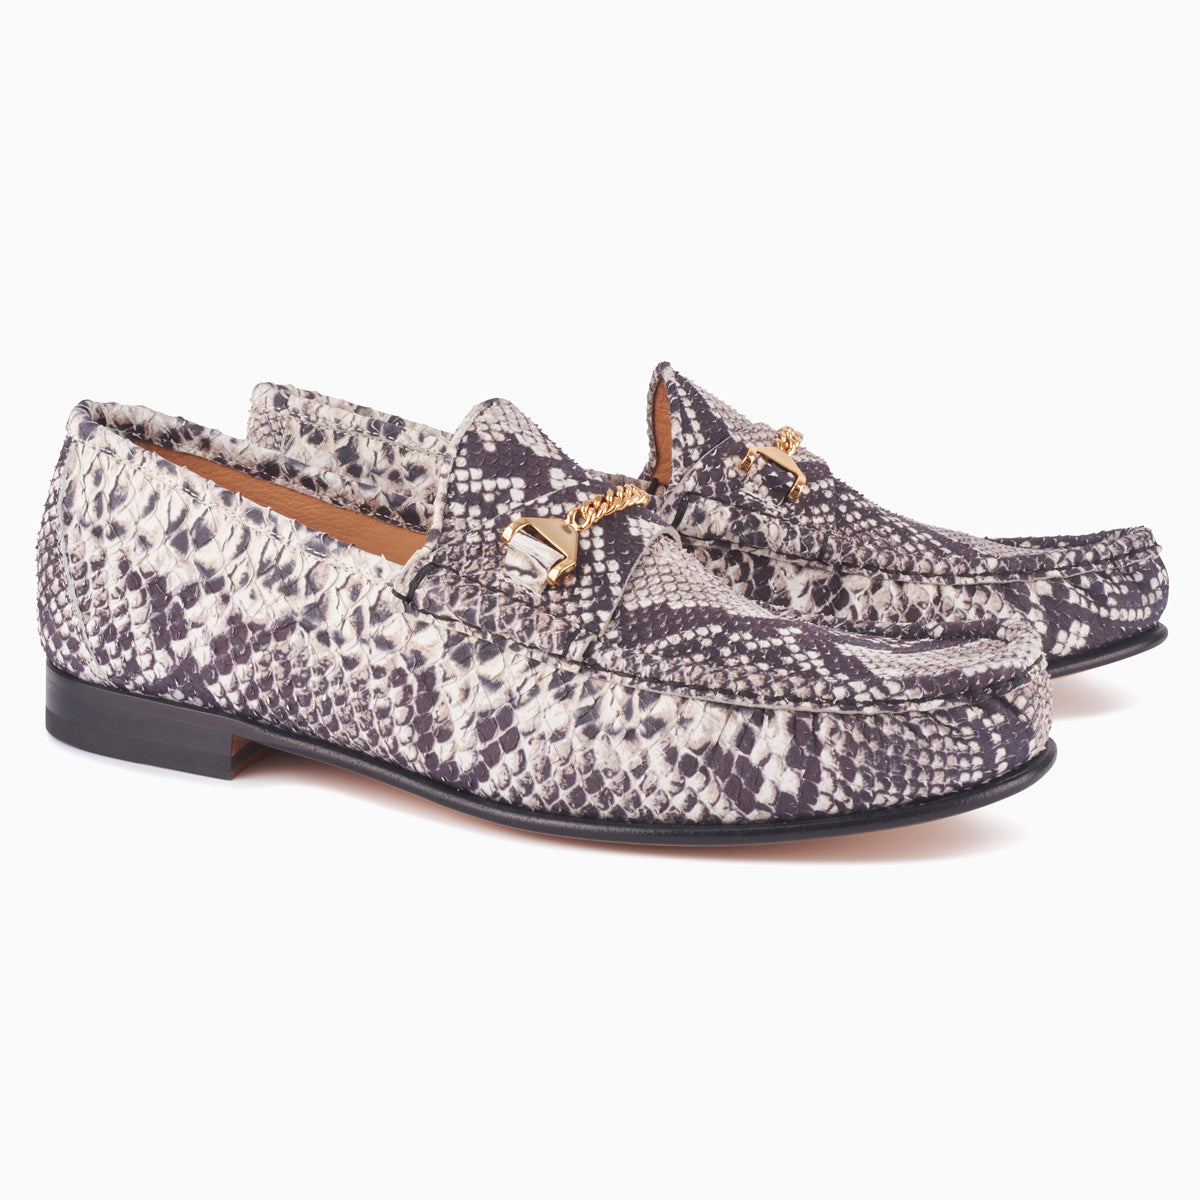 Hyusto Mick Moccasin rock python printed leather 3/4 view pair